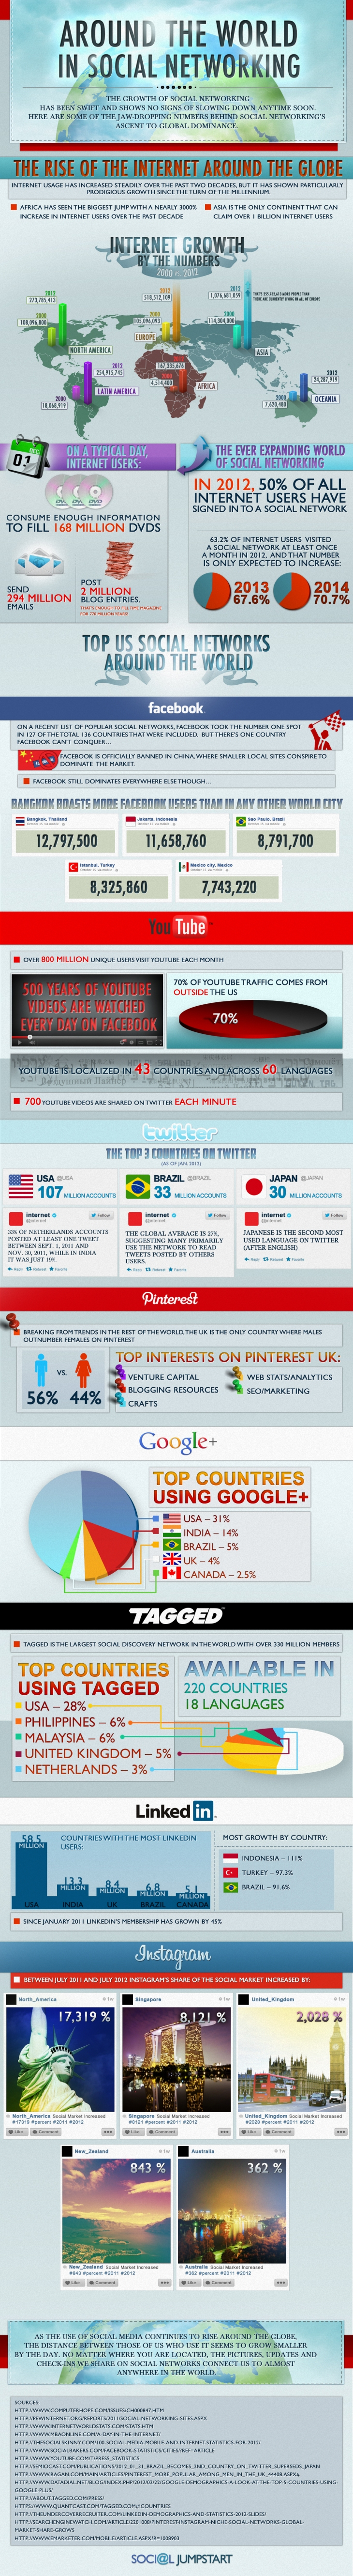 Rise-of-Social-Media-Infographic1